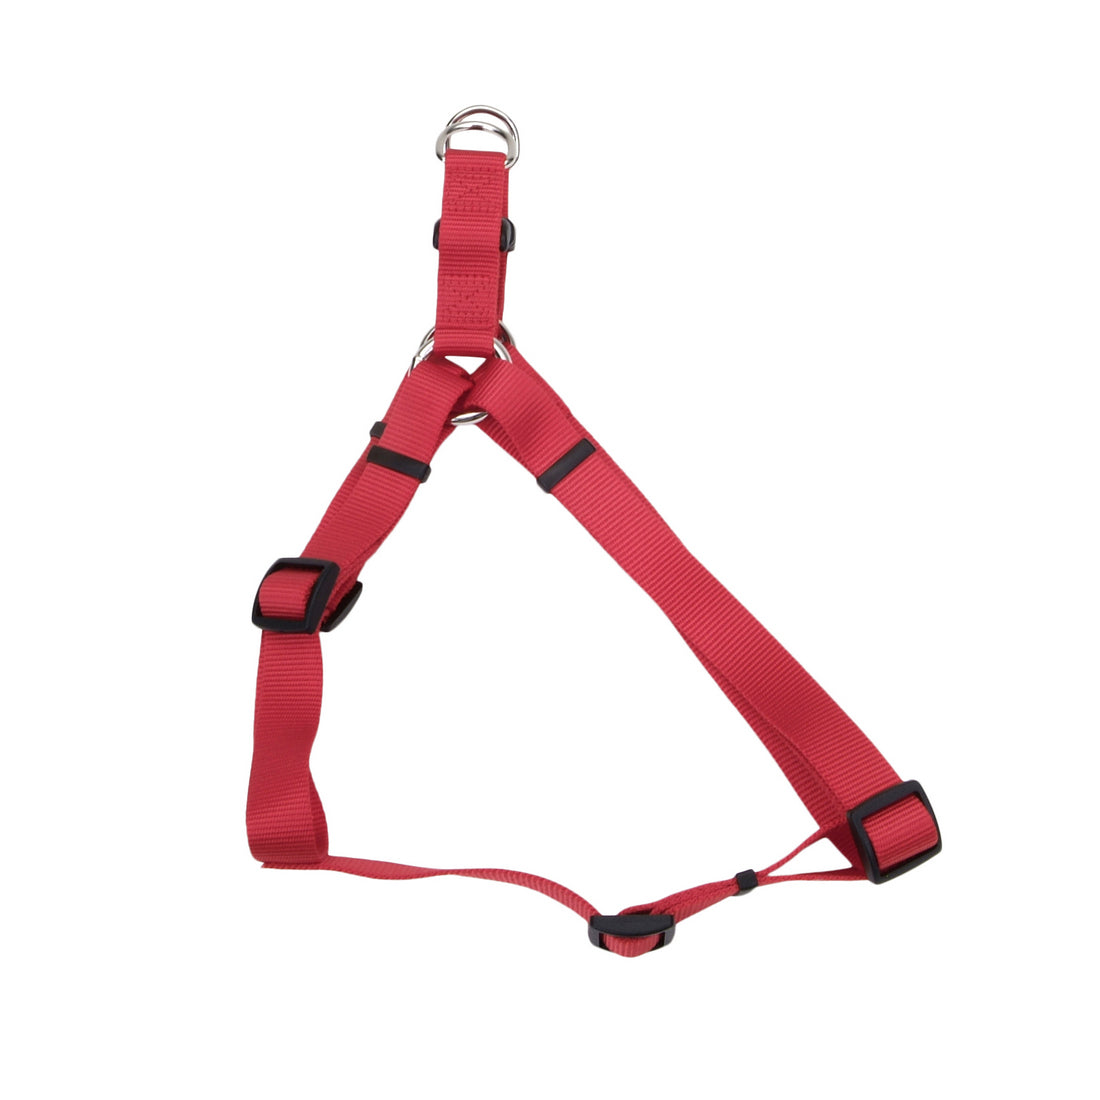 Coastal Comfort Wrap Adjustable Nylon Harness Large Red